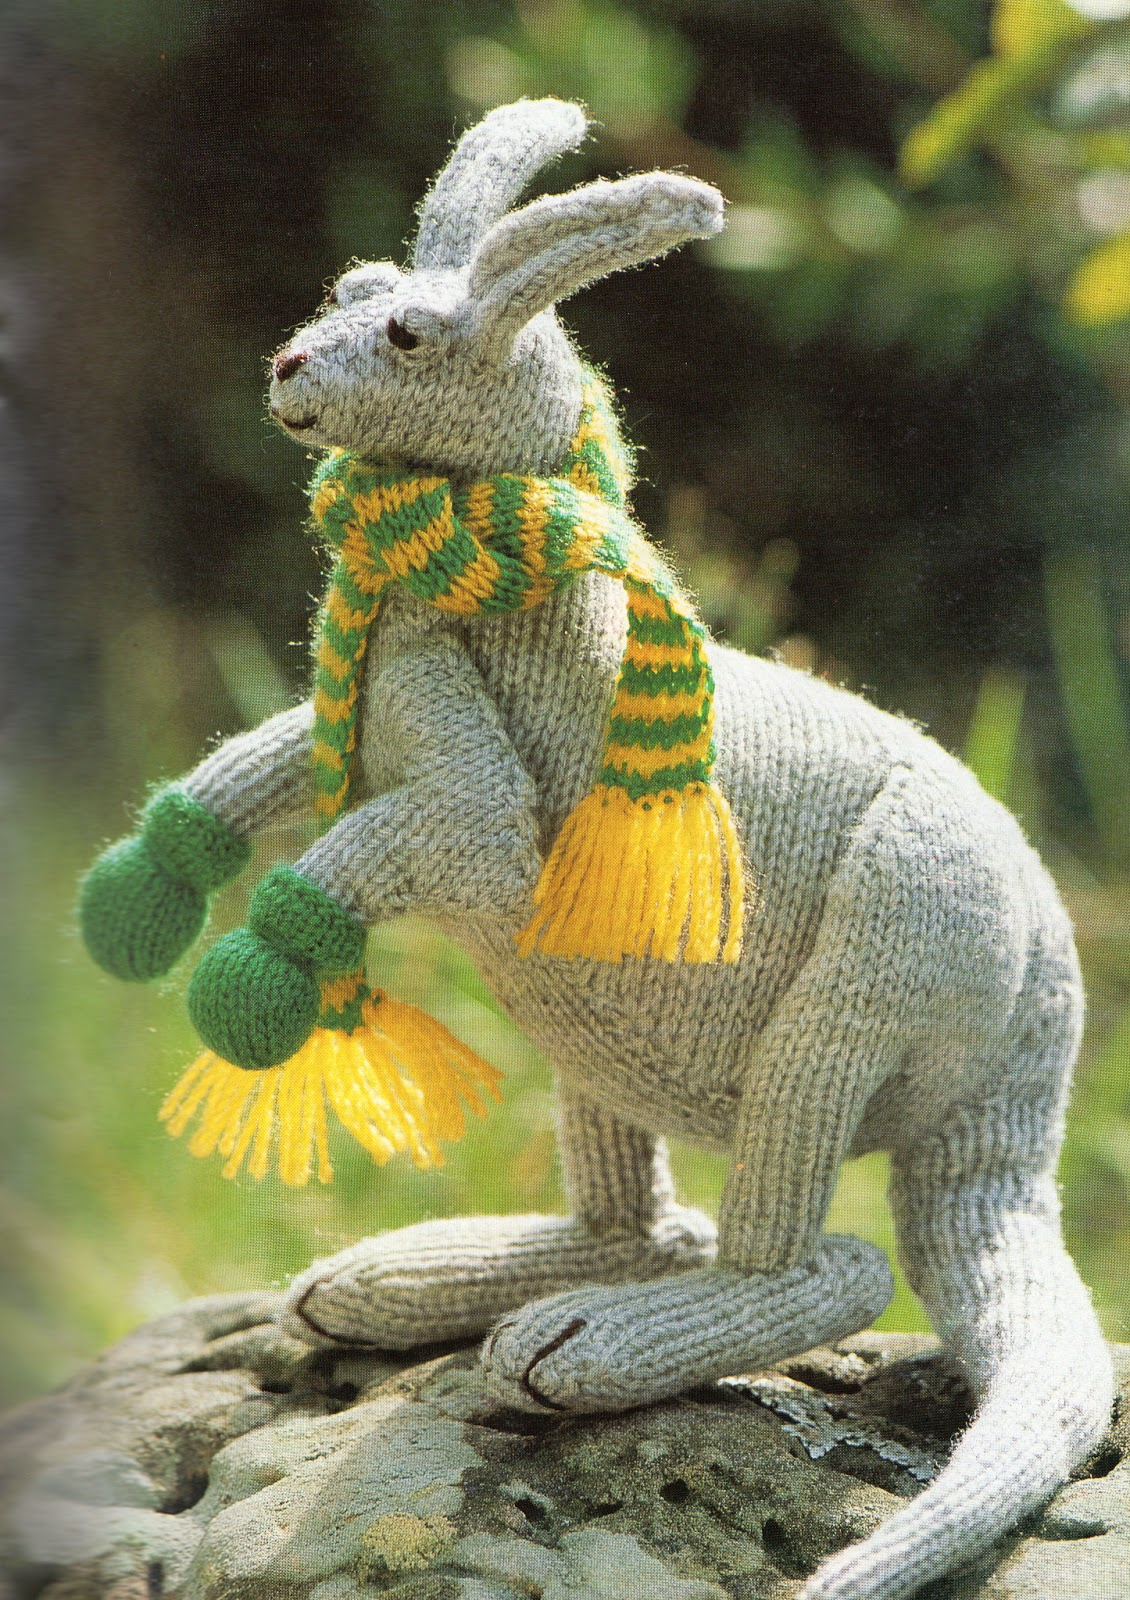 Kangaroo Knitting Pattern Julia Gillard : Knitographical: Our Prime Minister Knits - So What?